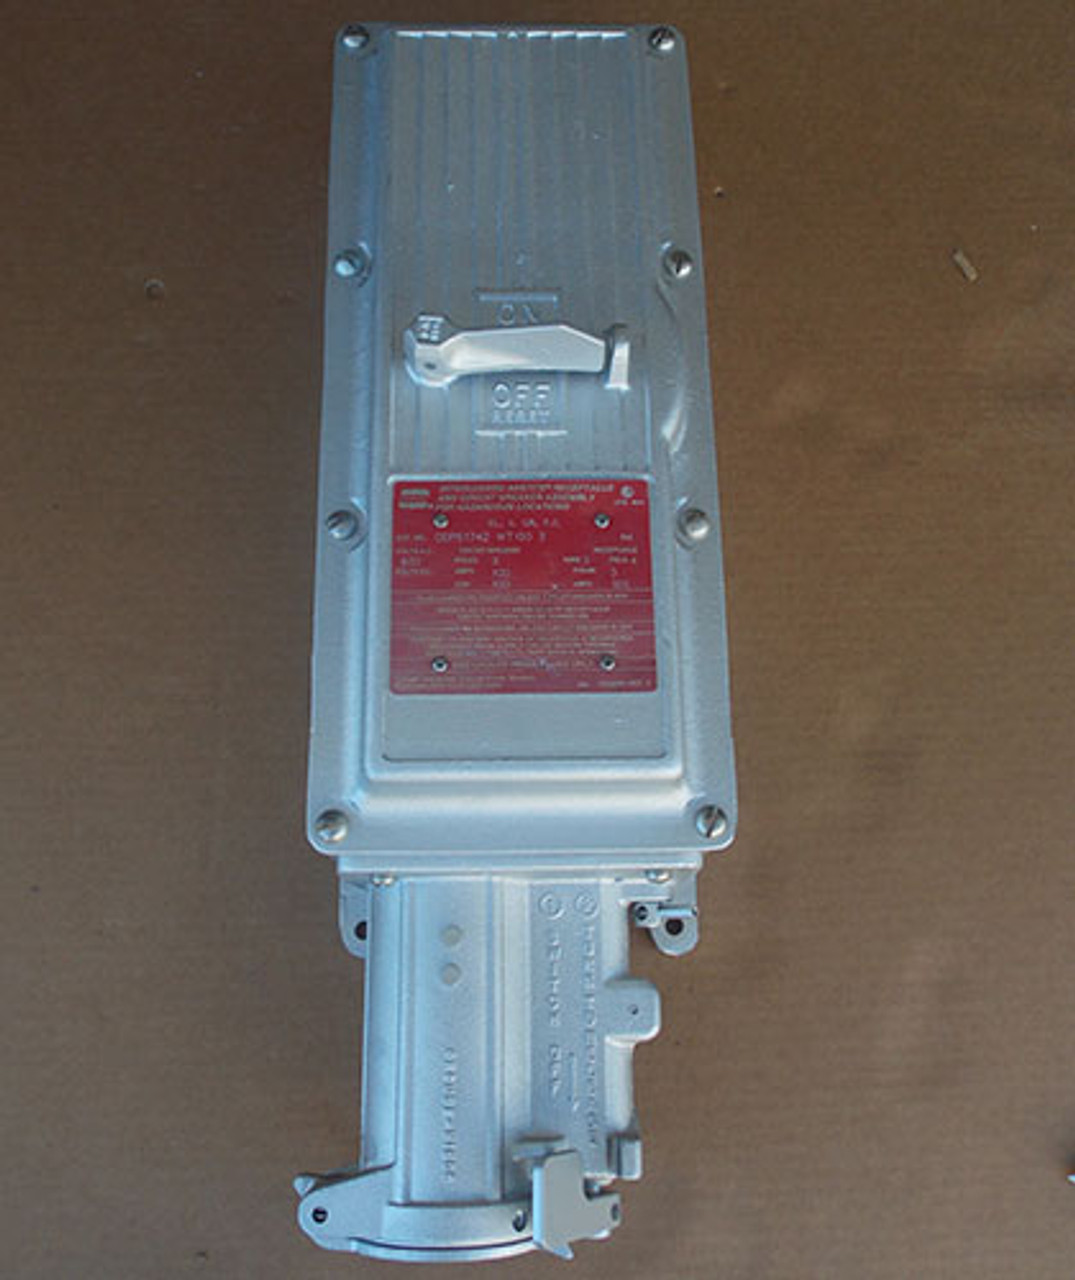 Crouse-Hinds DBR51742 WT100 3 100A Interlocked Receptacle & Breaker Assembly - New